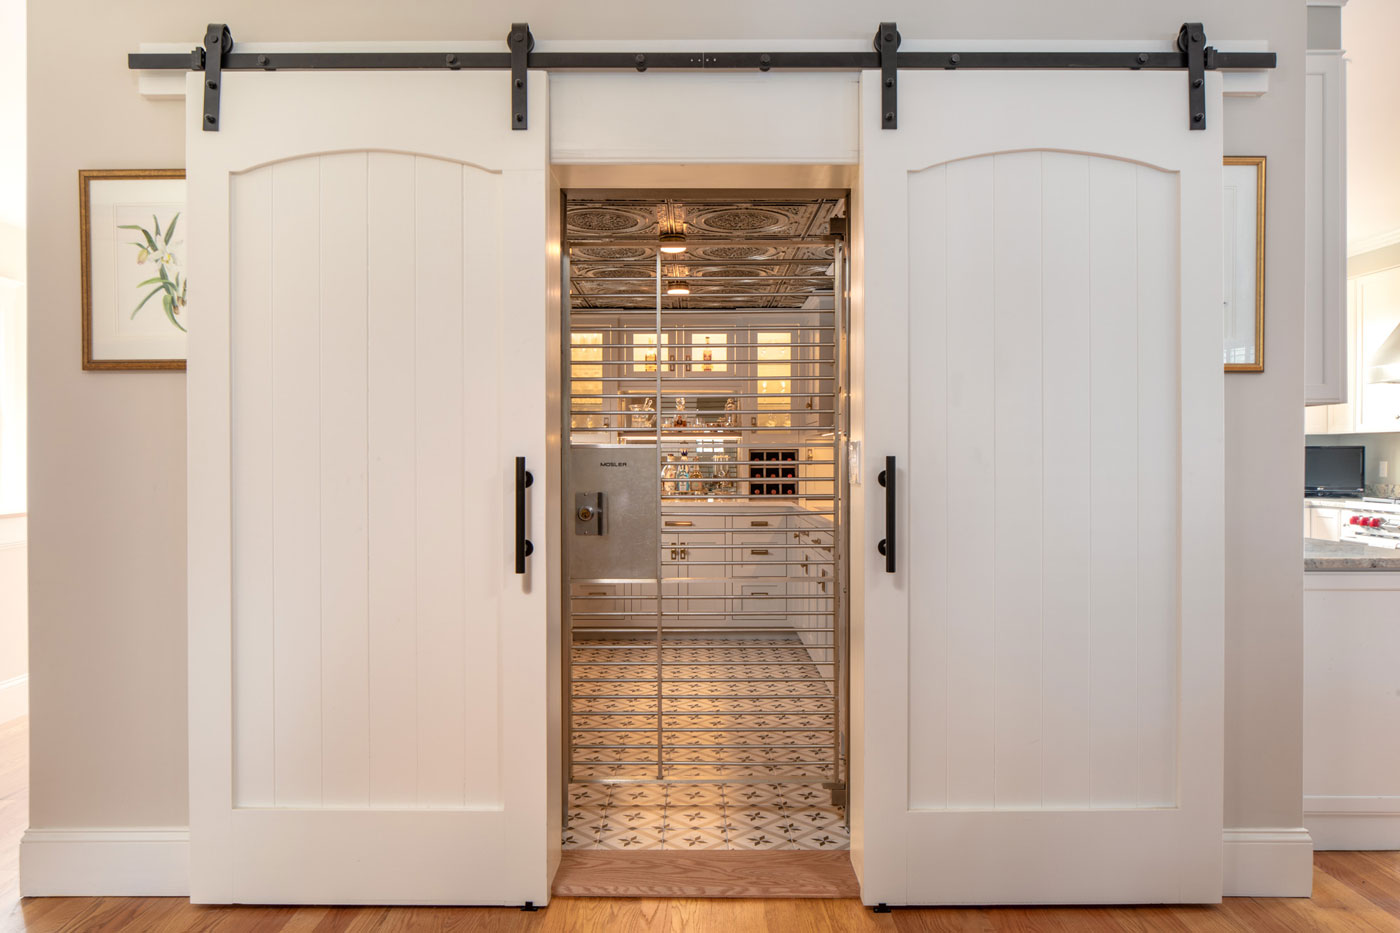 white barn doors that open up to a butler's pantry converted from a bank vault